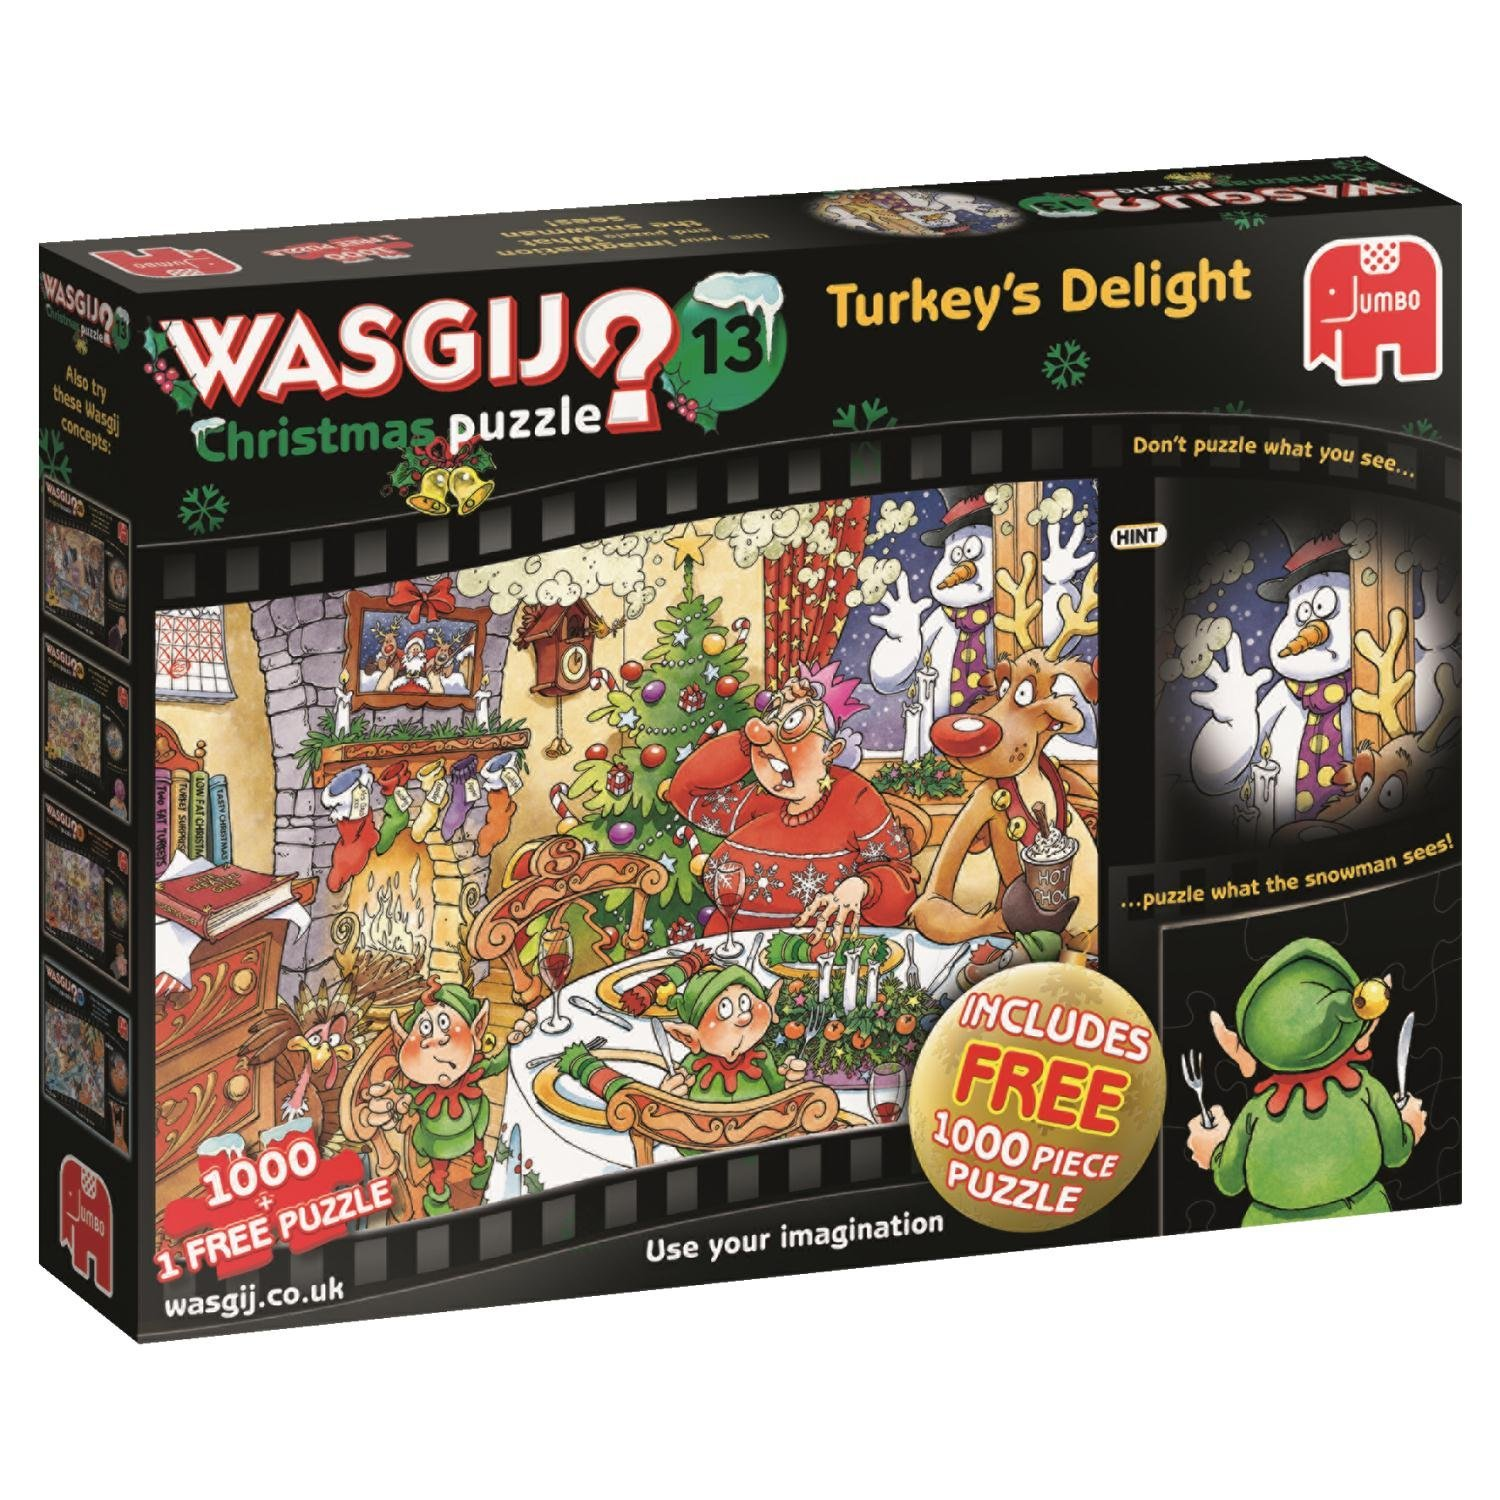 Wasgij Christmas 13, Turkey's Delight Jigsaw Puzzle, (2 x 1000-Piece)